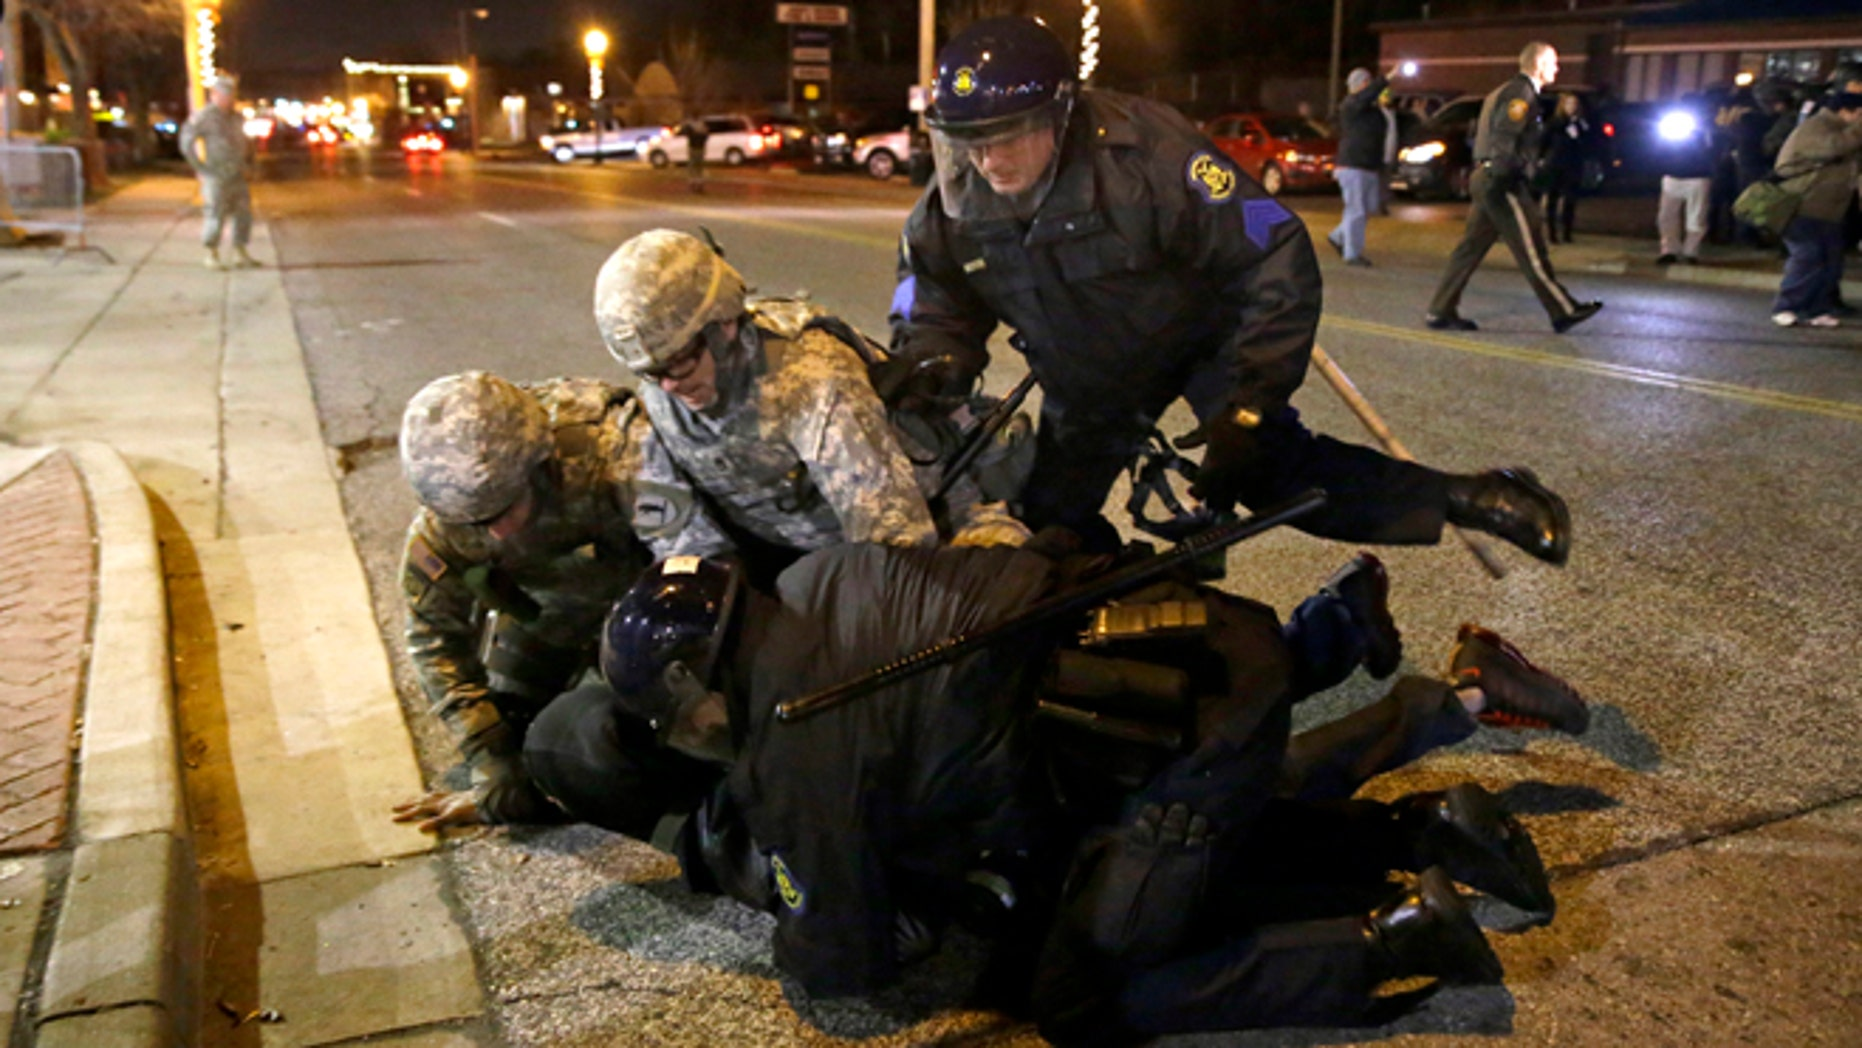 A protester is taken into custody Friday, Nov. 28, 2014, in Ferguson, Mo. Several protesters have been taken into custody during a demonstration outside the police department. Tensions escalated late Friday during an initially calm demonstration after police said protesters were illegally blocking West Florissant Avenue. (AP Photo/Jeff Roberson)